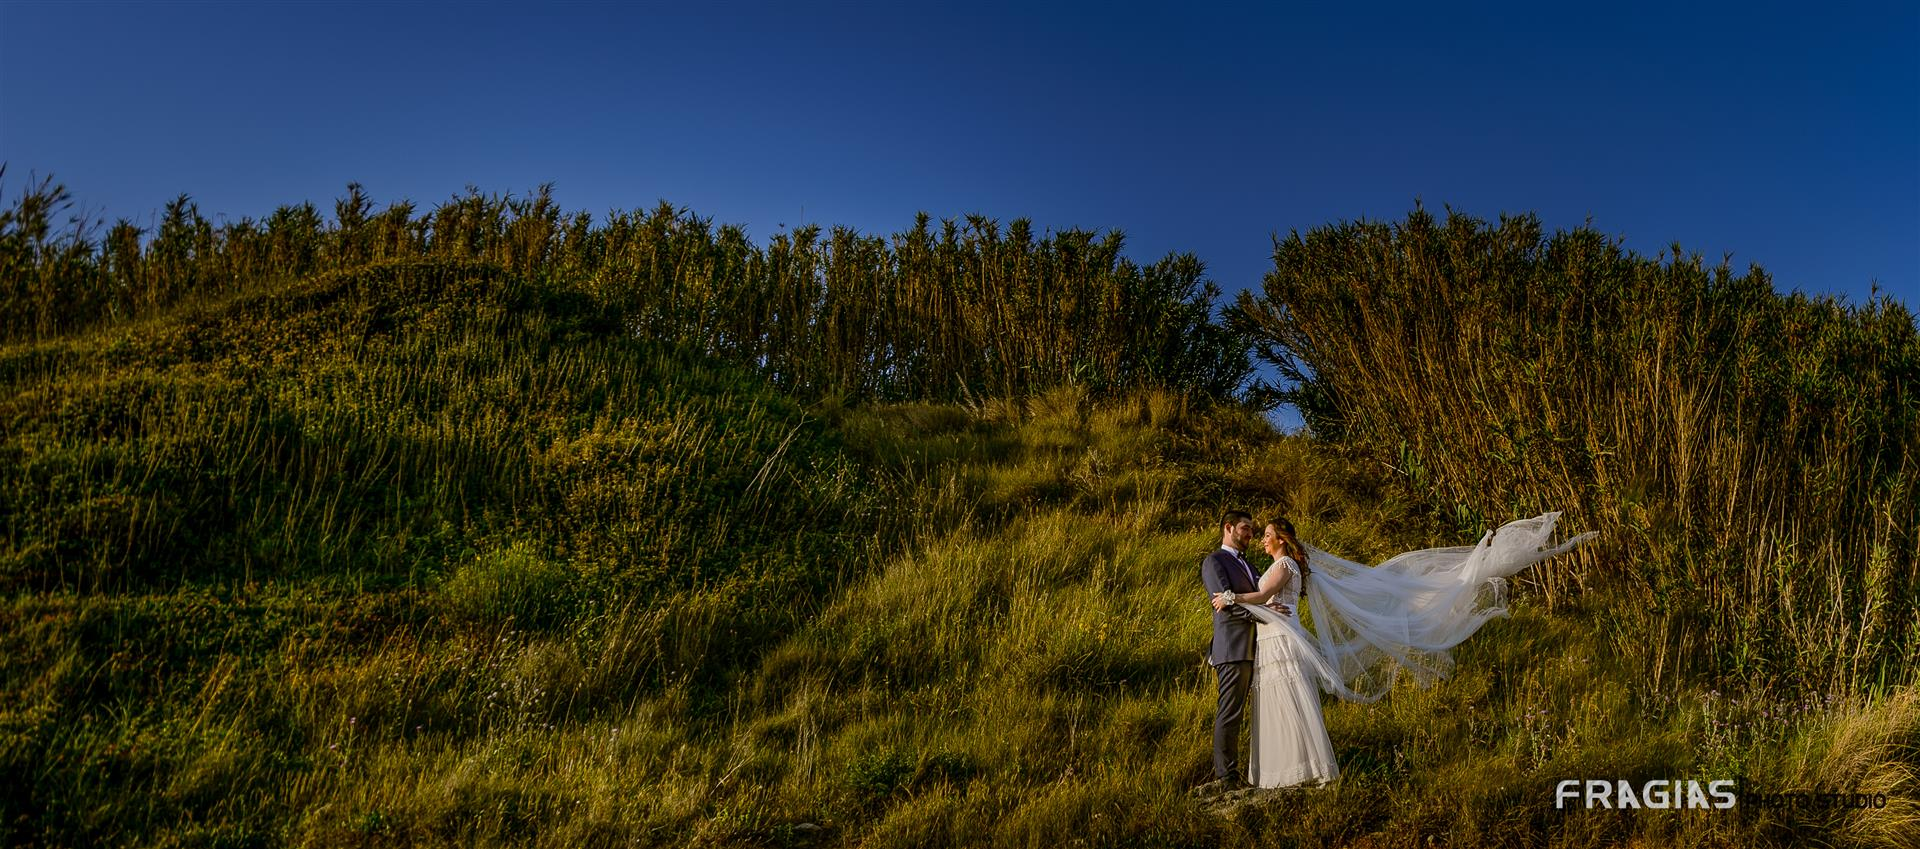 wedding kefalonia photo shooting 7